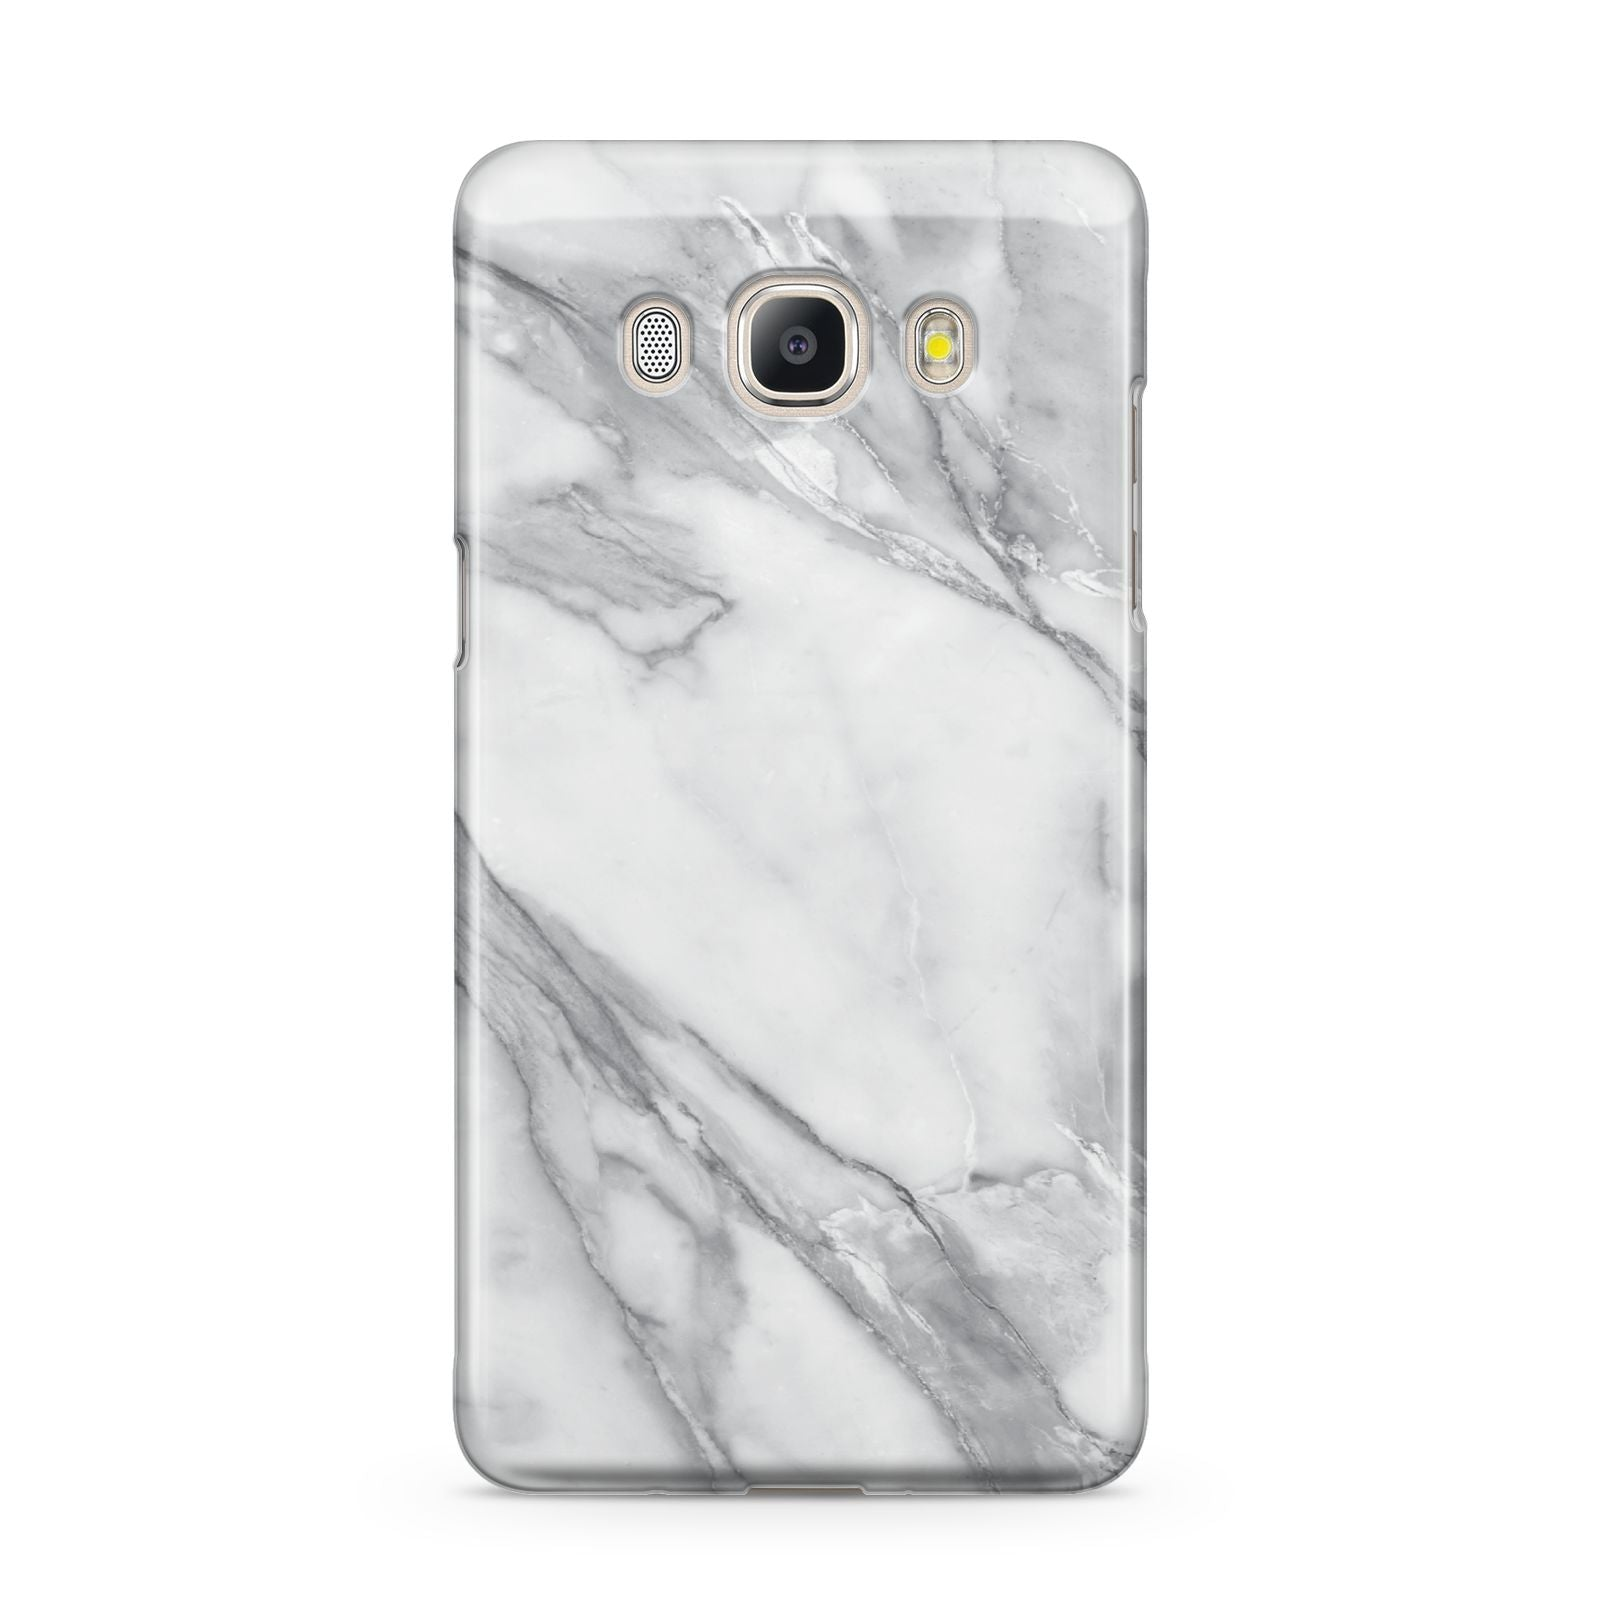 Faux Marble Effect White Grey Samsung Galaxy J5 2016 Case